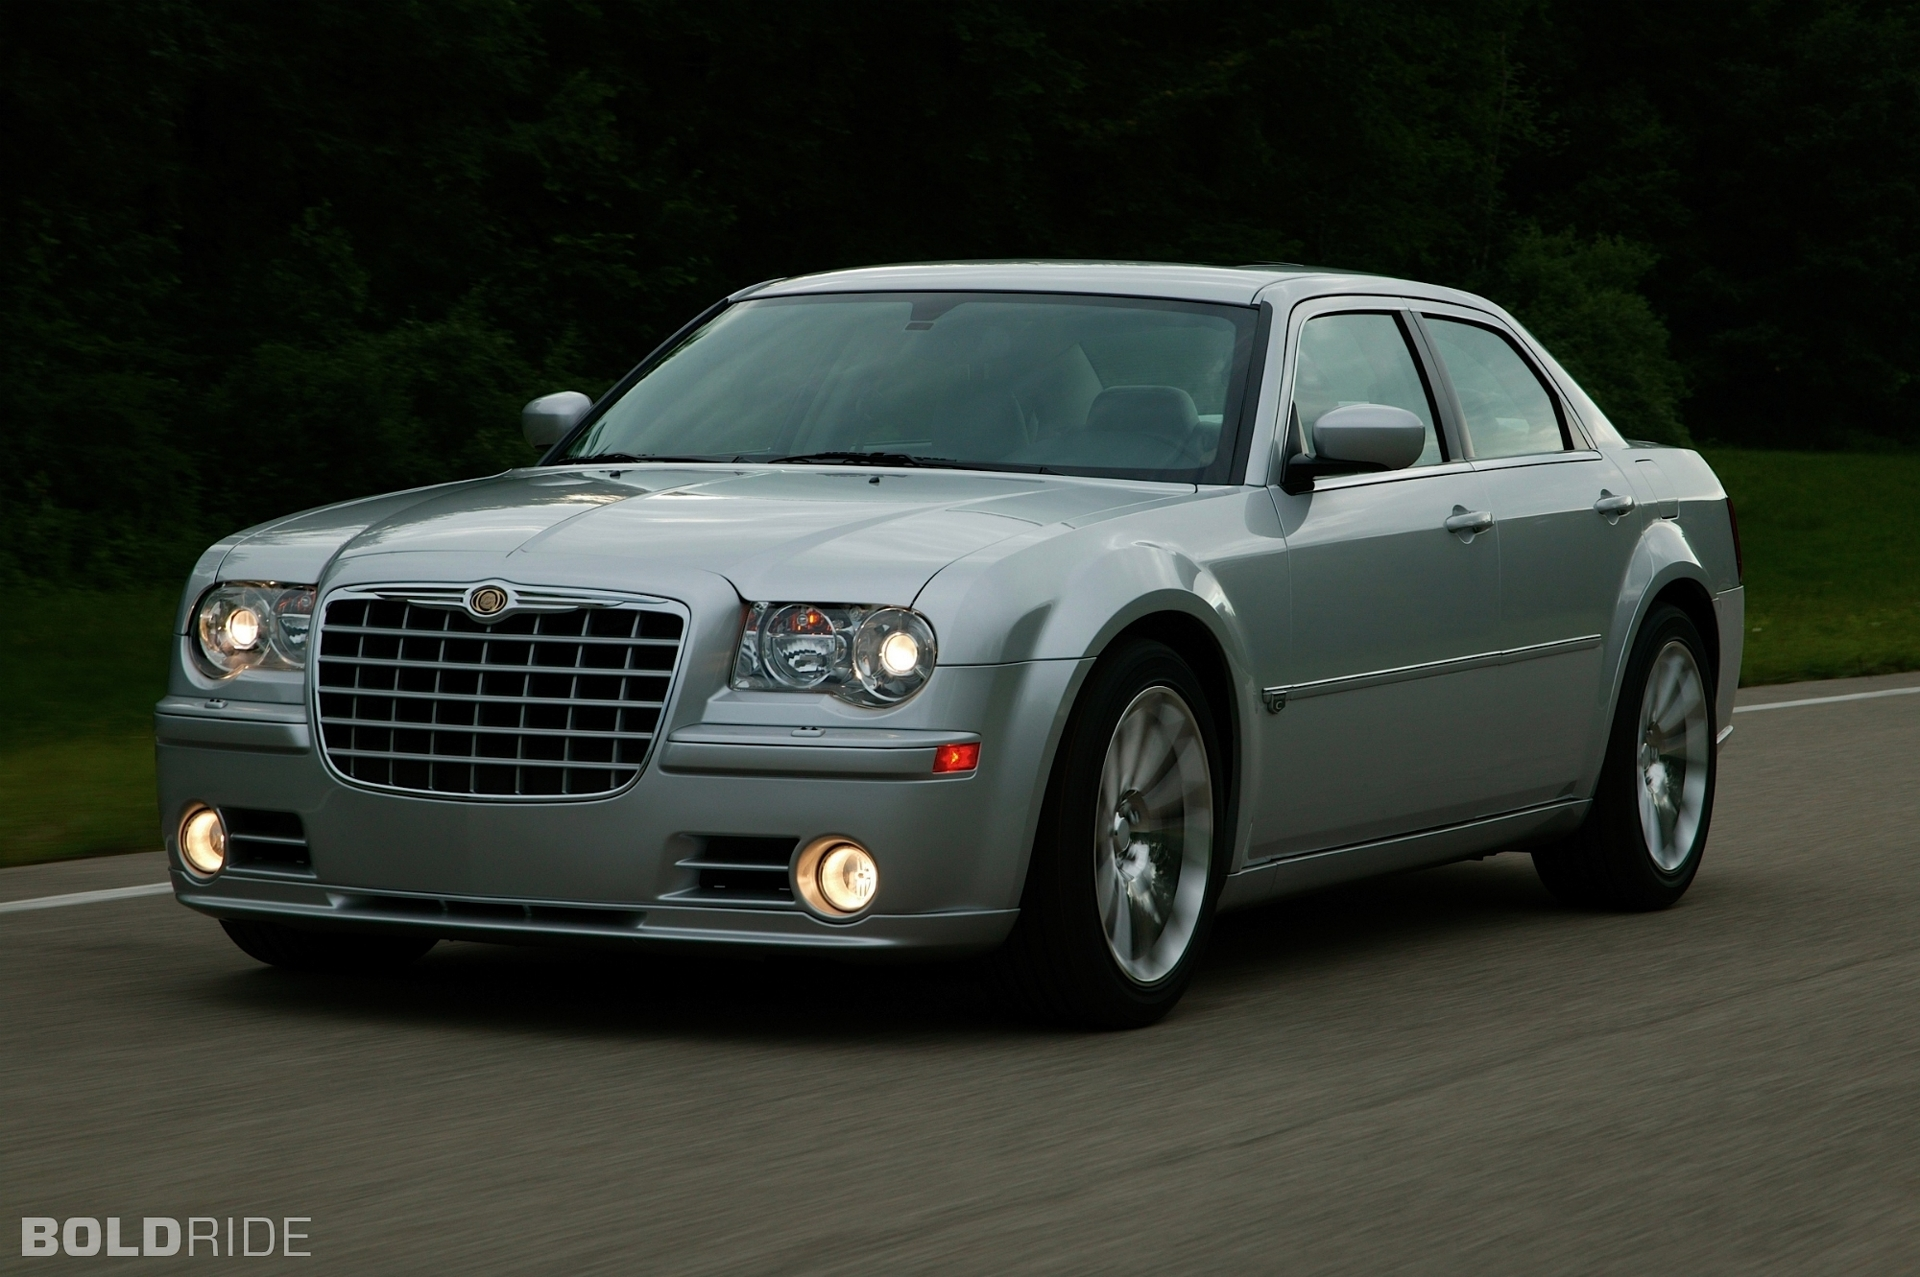 chrysler name forum udluuz buy expired stroker larger version car supercharged forums srt image sale views size sell click img for